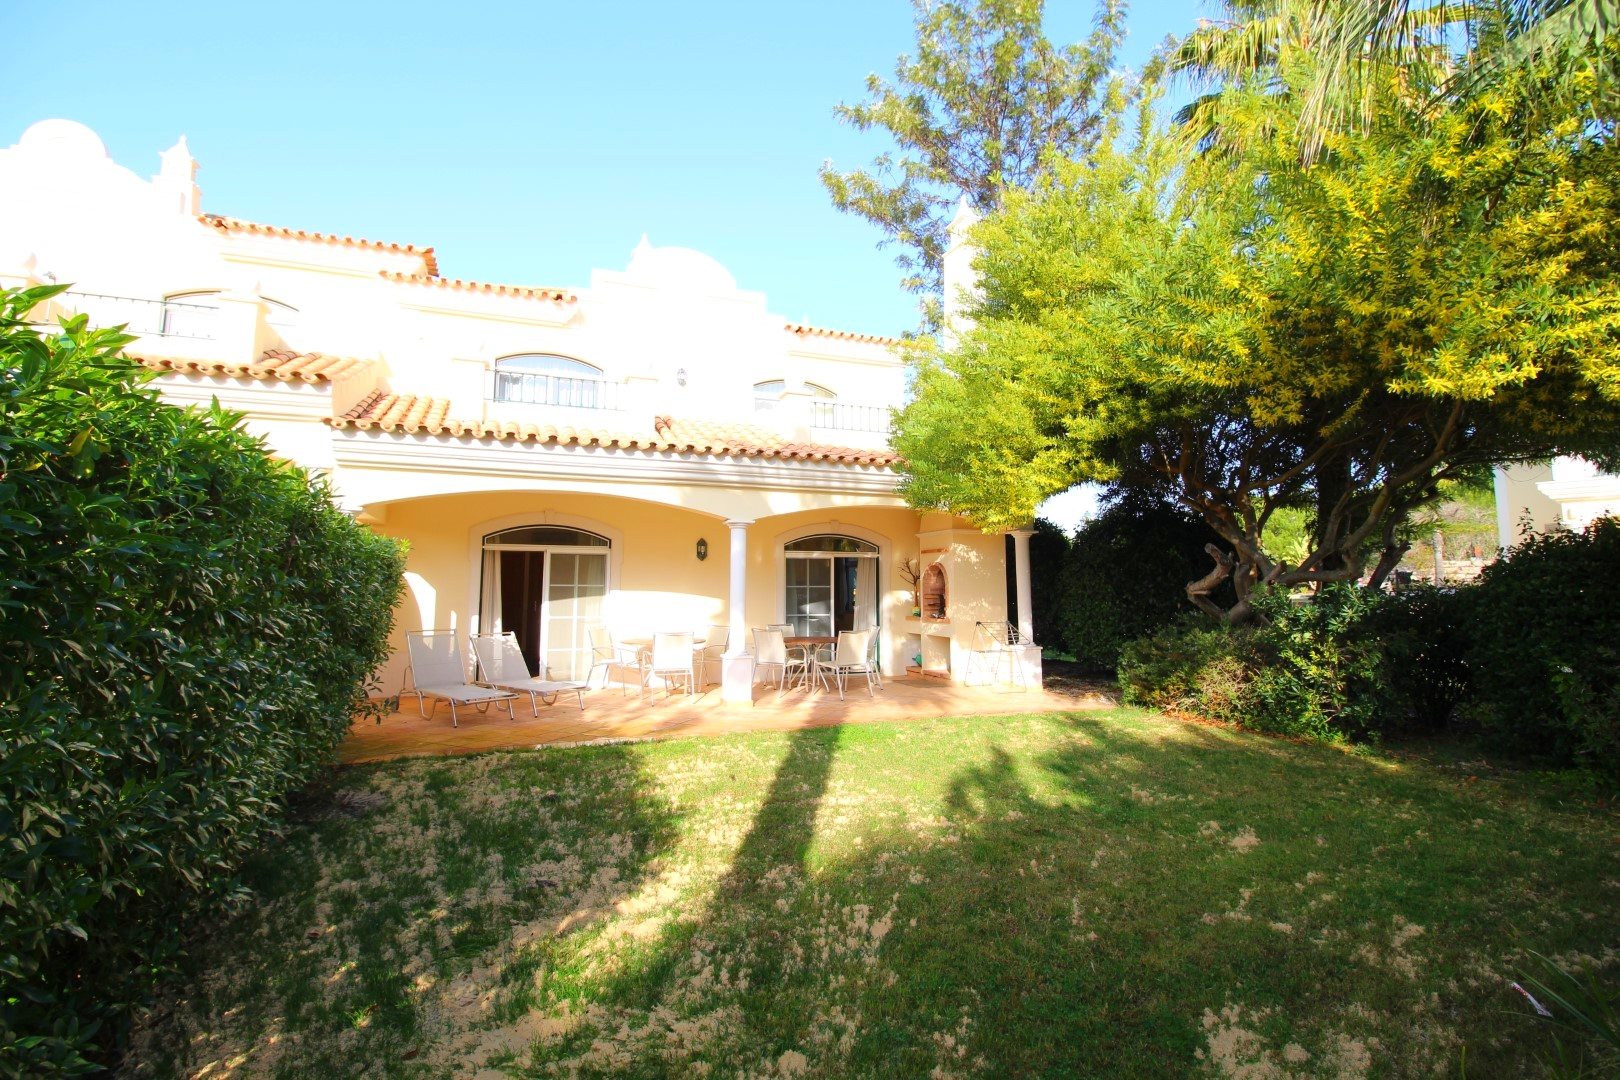 Available for Long Term Rental – V2+1 End Unit Town House – Vale dos Pinheiros, next to Campus Sports Centre and the Lake of Quinta do Lago Golf Resort